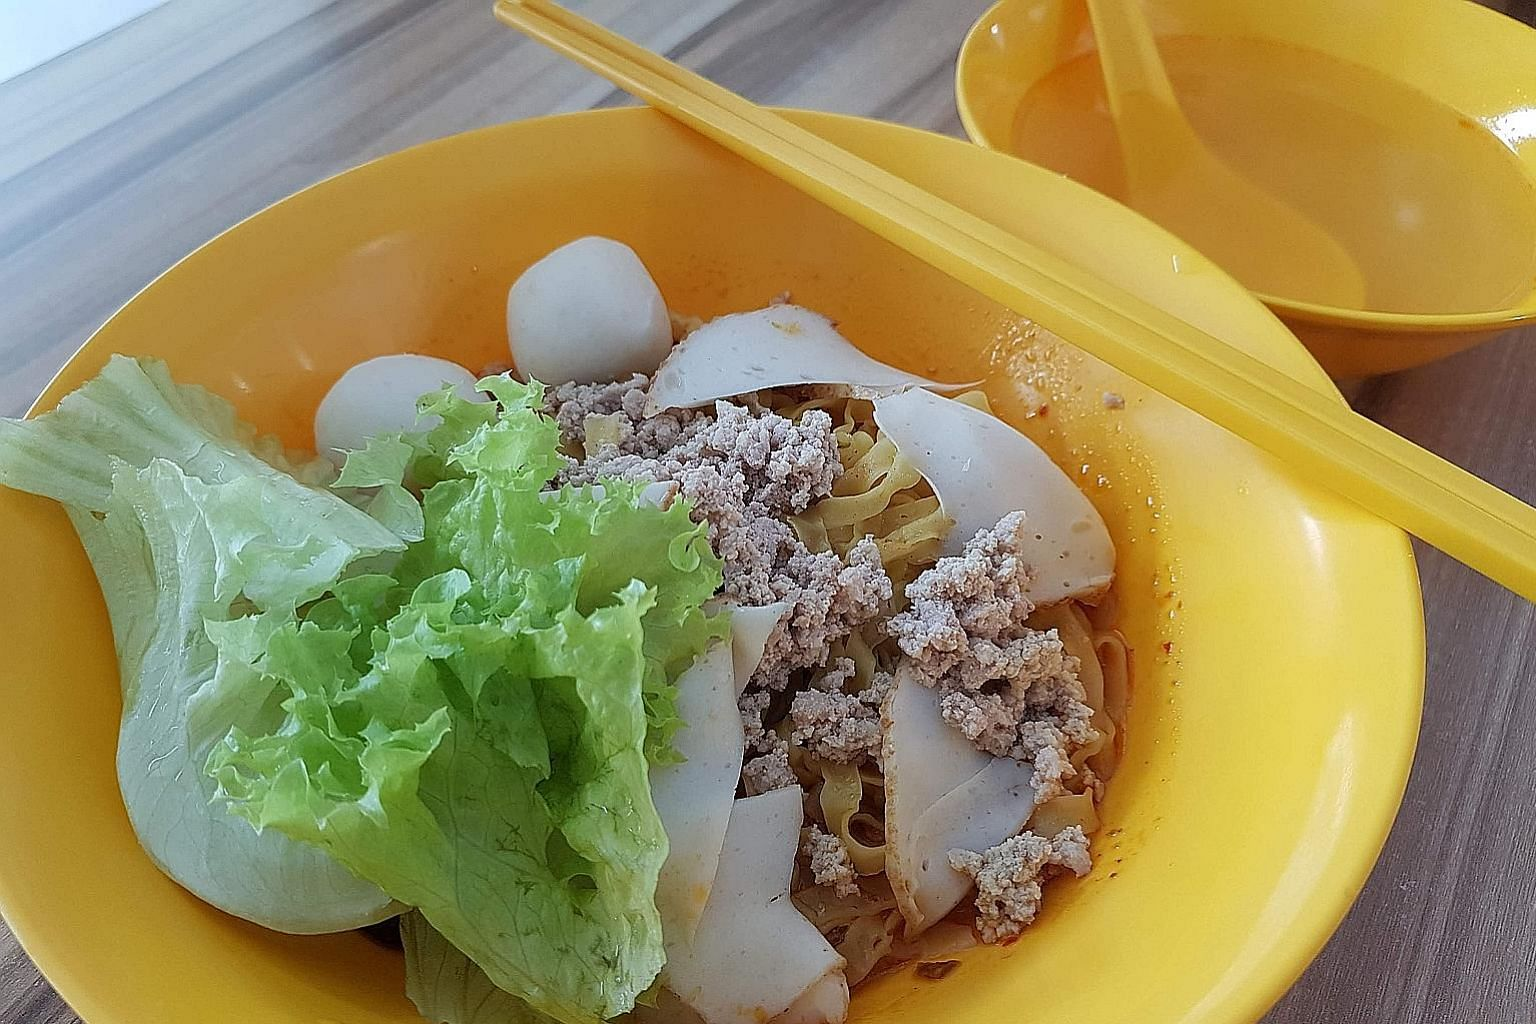 The chilli in the fishball minced meat noodles makes the dish stand out.